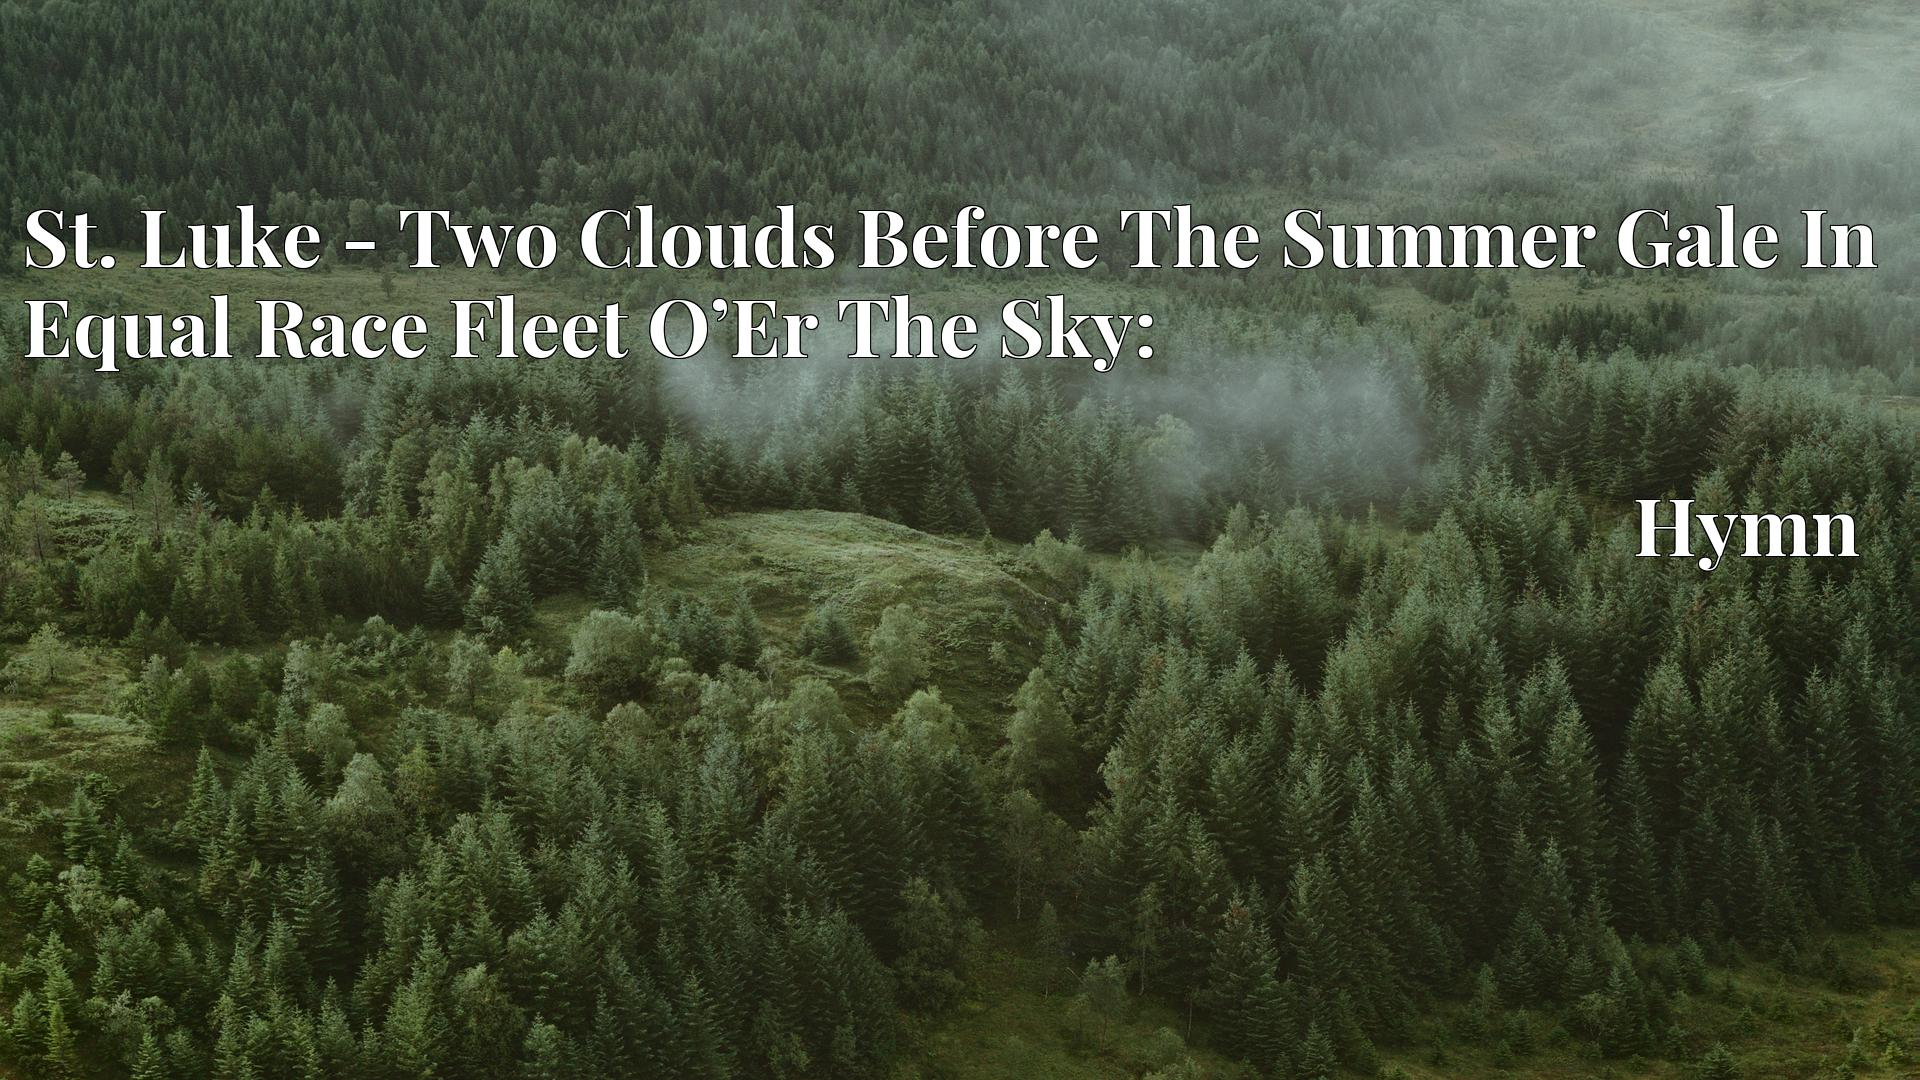 St. Luke - Two Clouds Before The Summer Gale In Equal Race Fleet O'Er The Sky: - Hymn